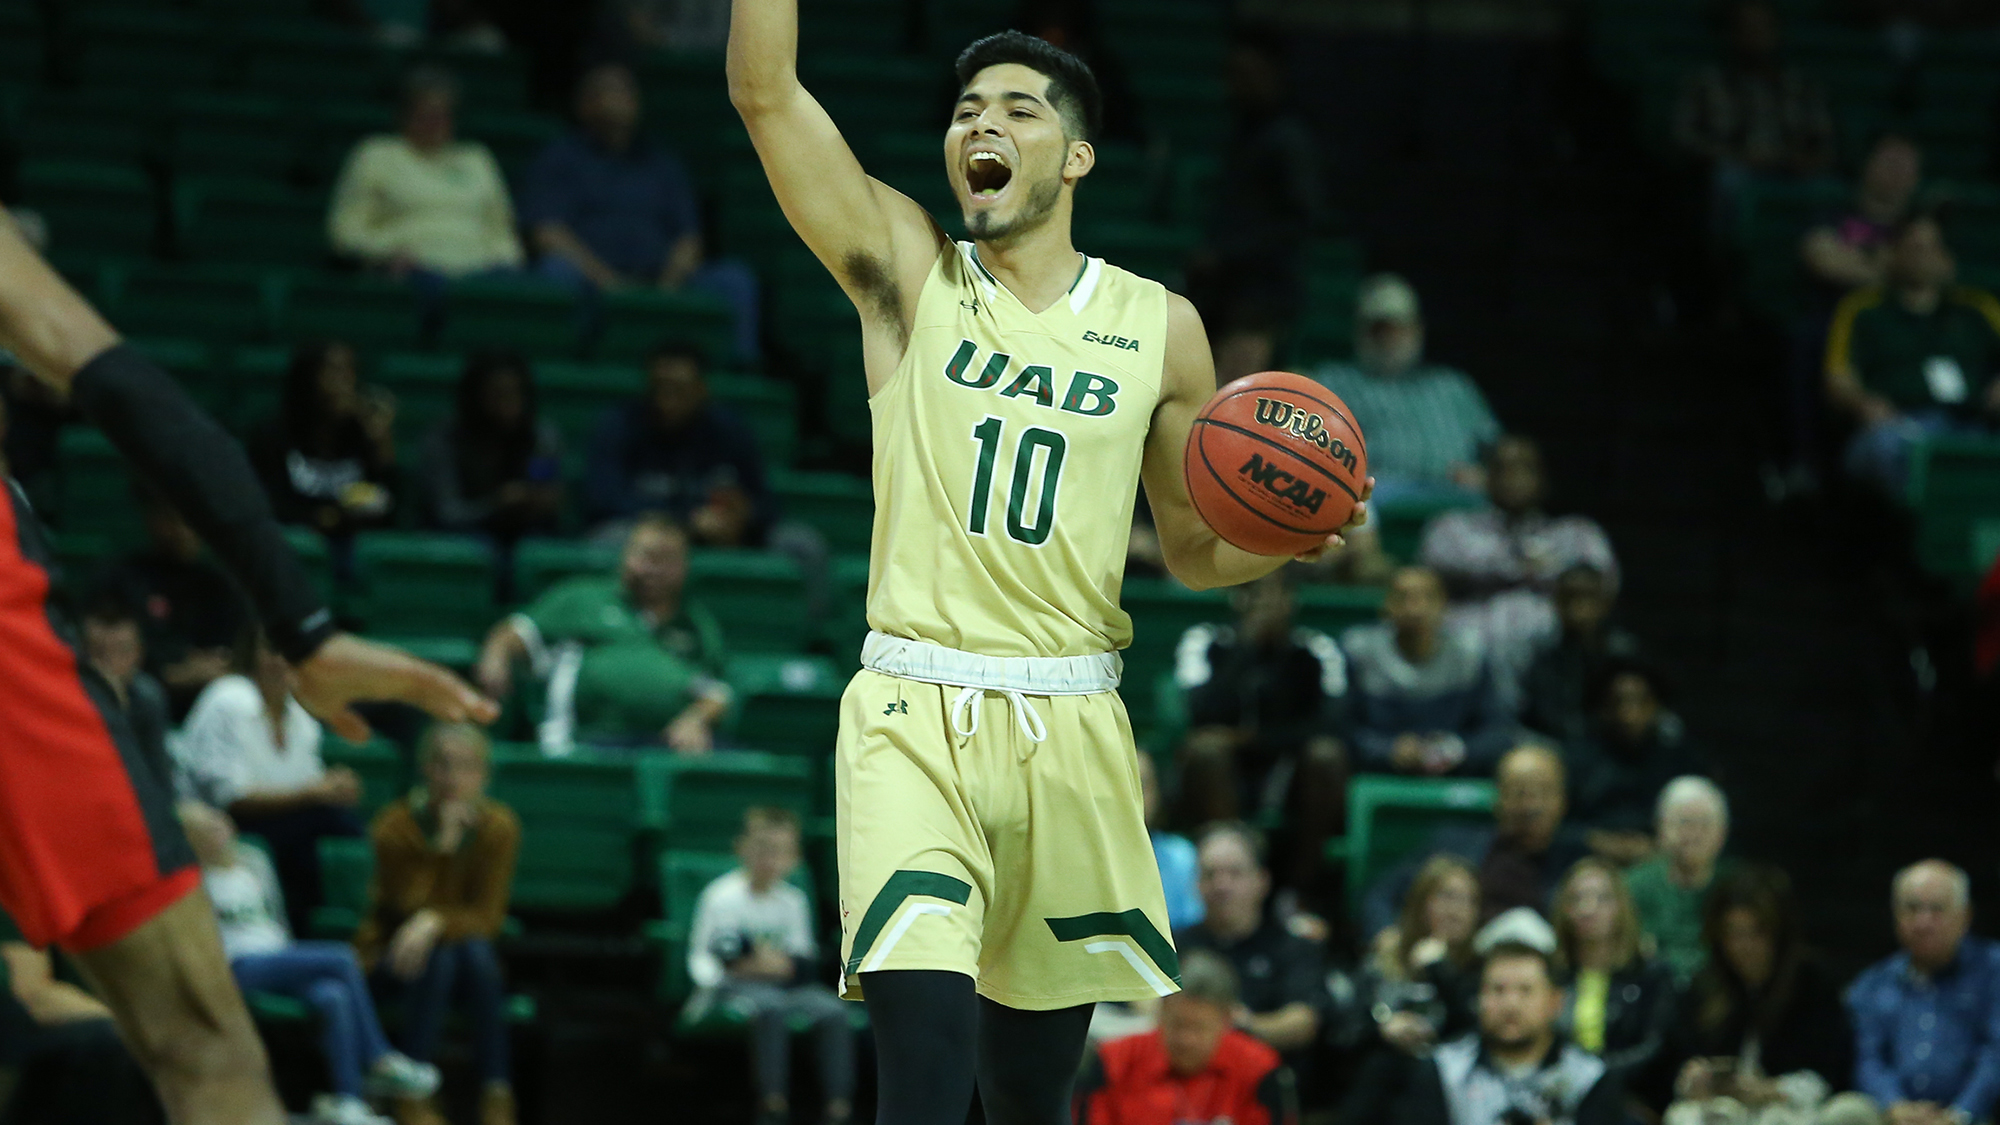 uab wraps up exhibition play with morehouse college - university of